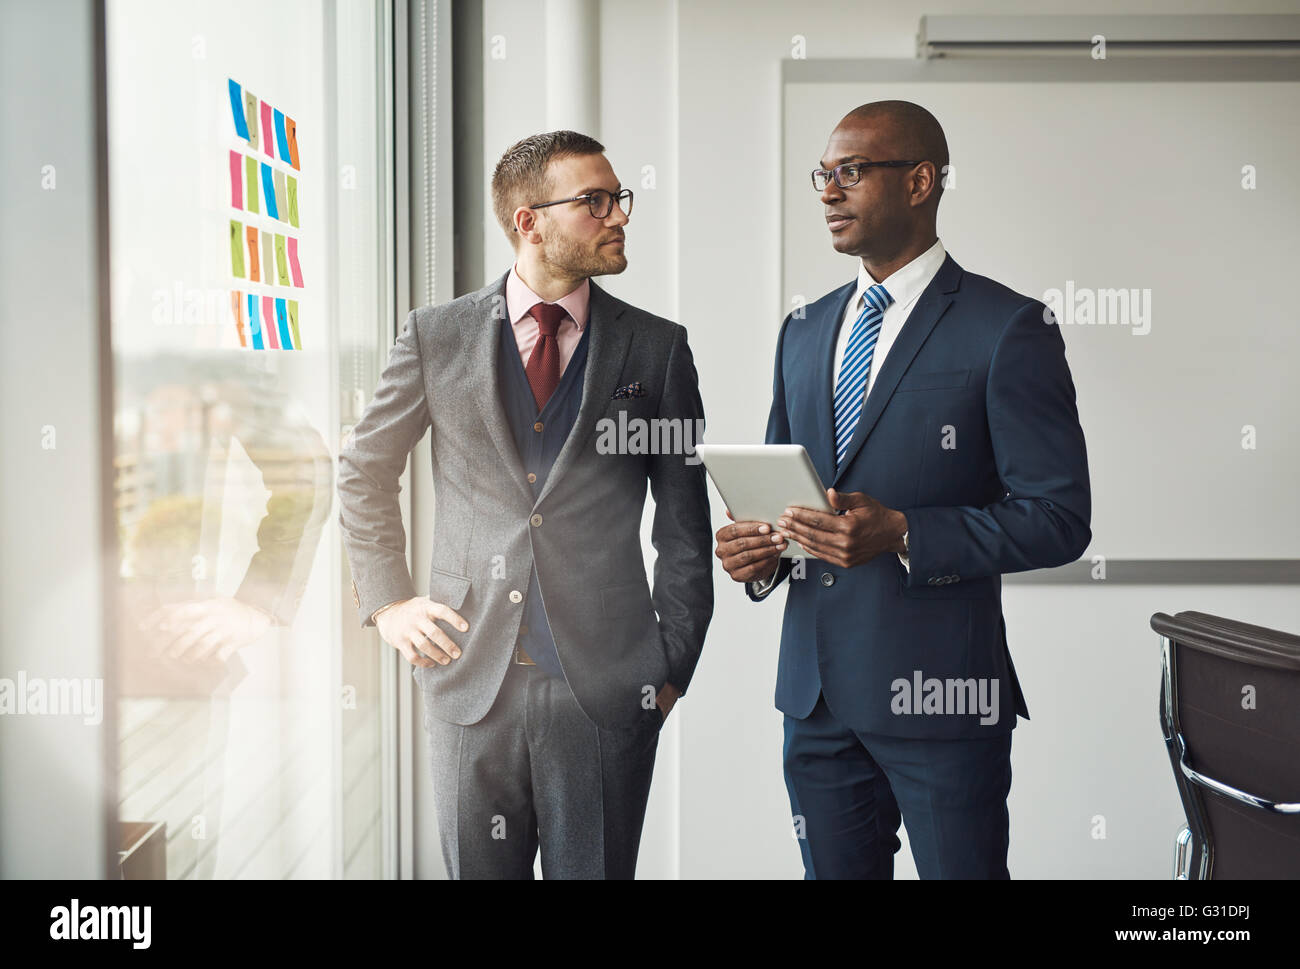 Two smart business managers or office co-workers in a discussion standing in front of a window with colorful memos - Stock Image